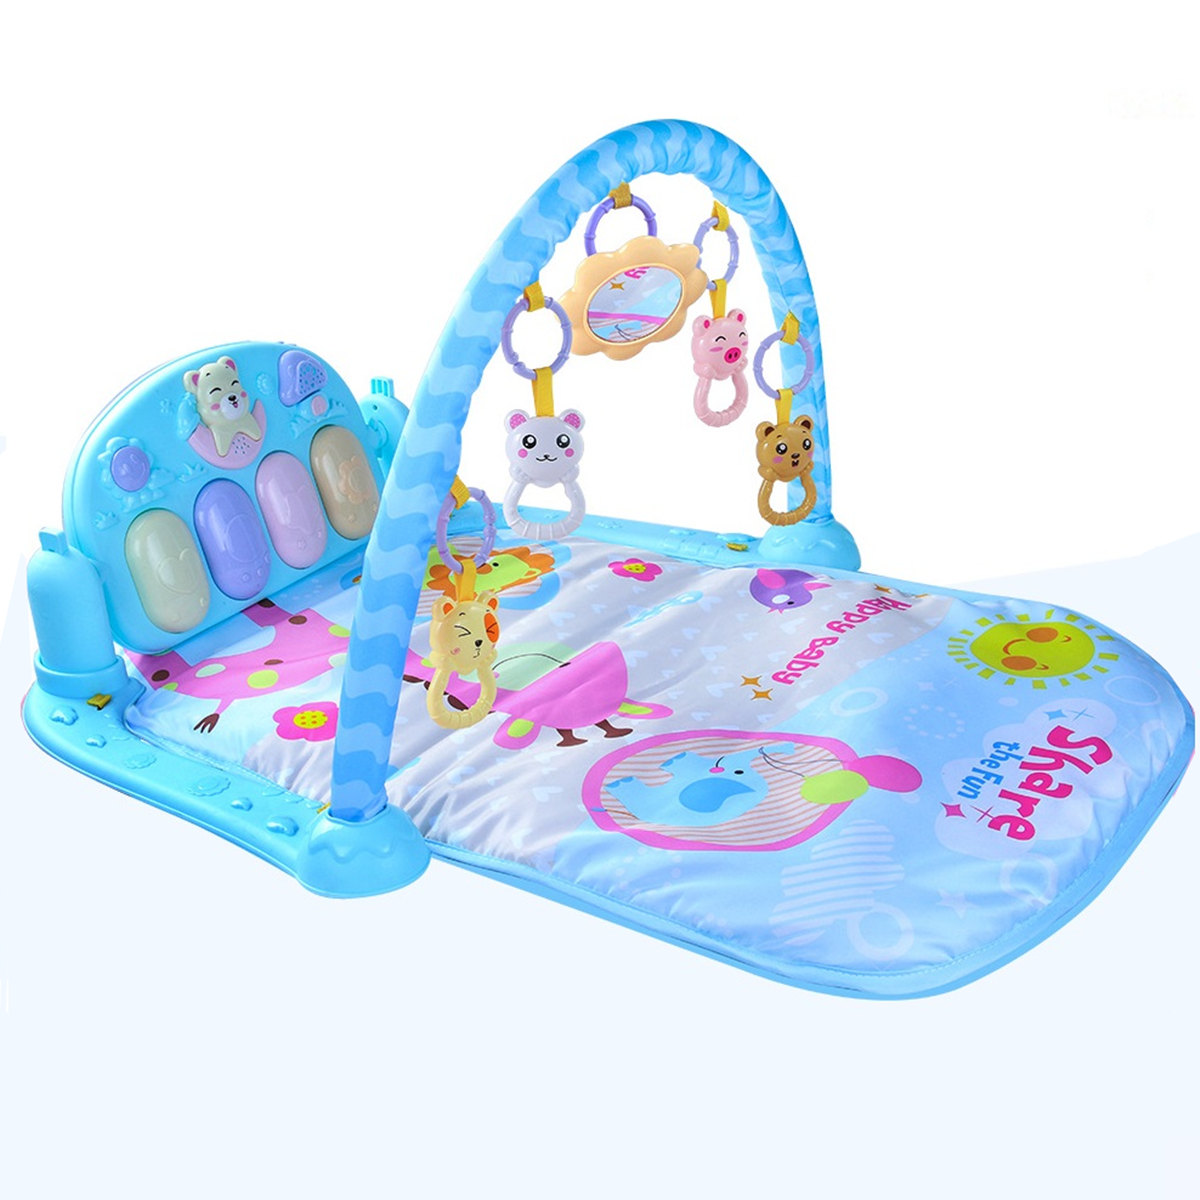 Children-Kid-Baby-Musical-Gym-Play-Mat-Education-Activity-Playmat-Pad-Game-Floor